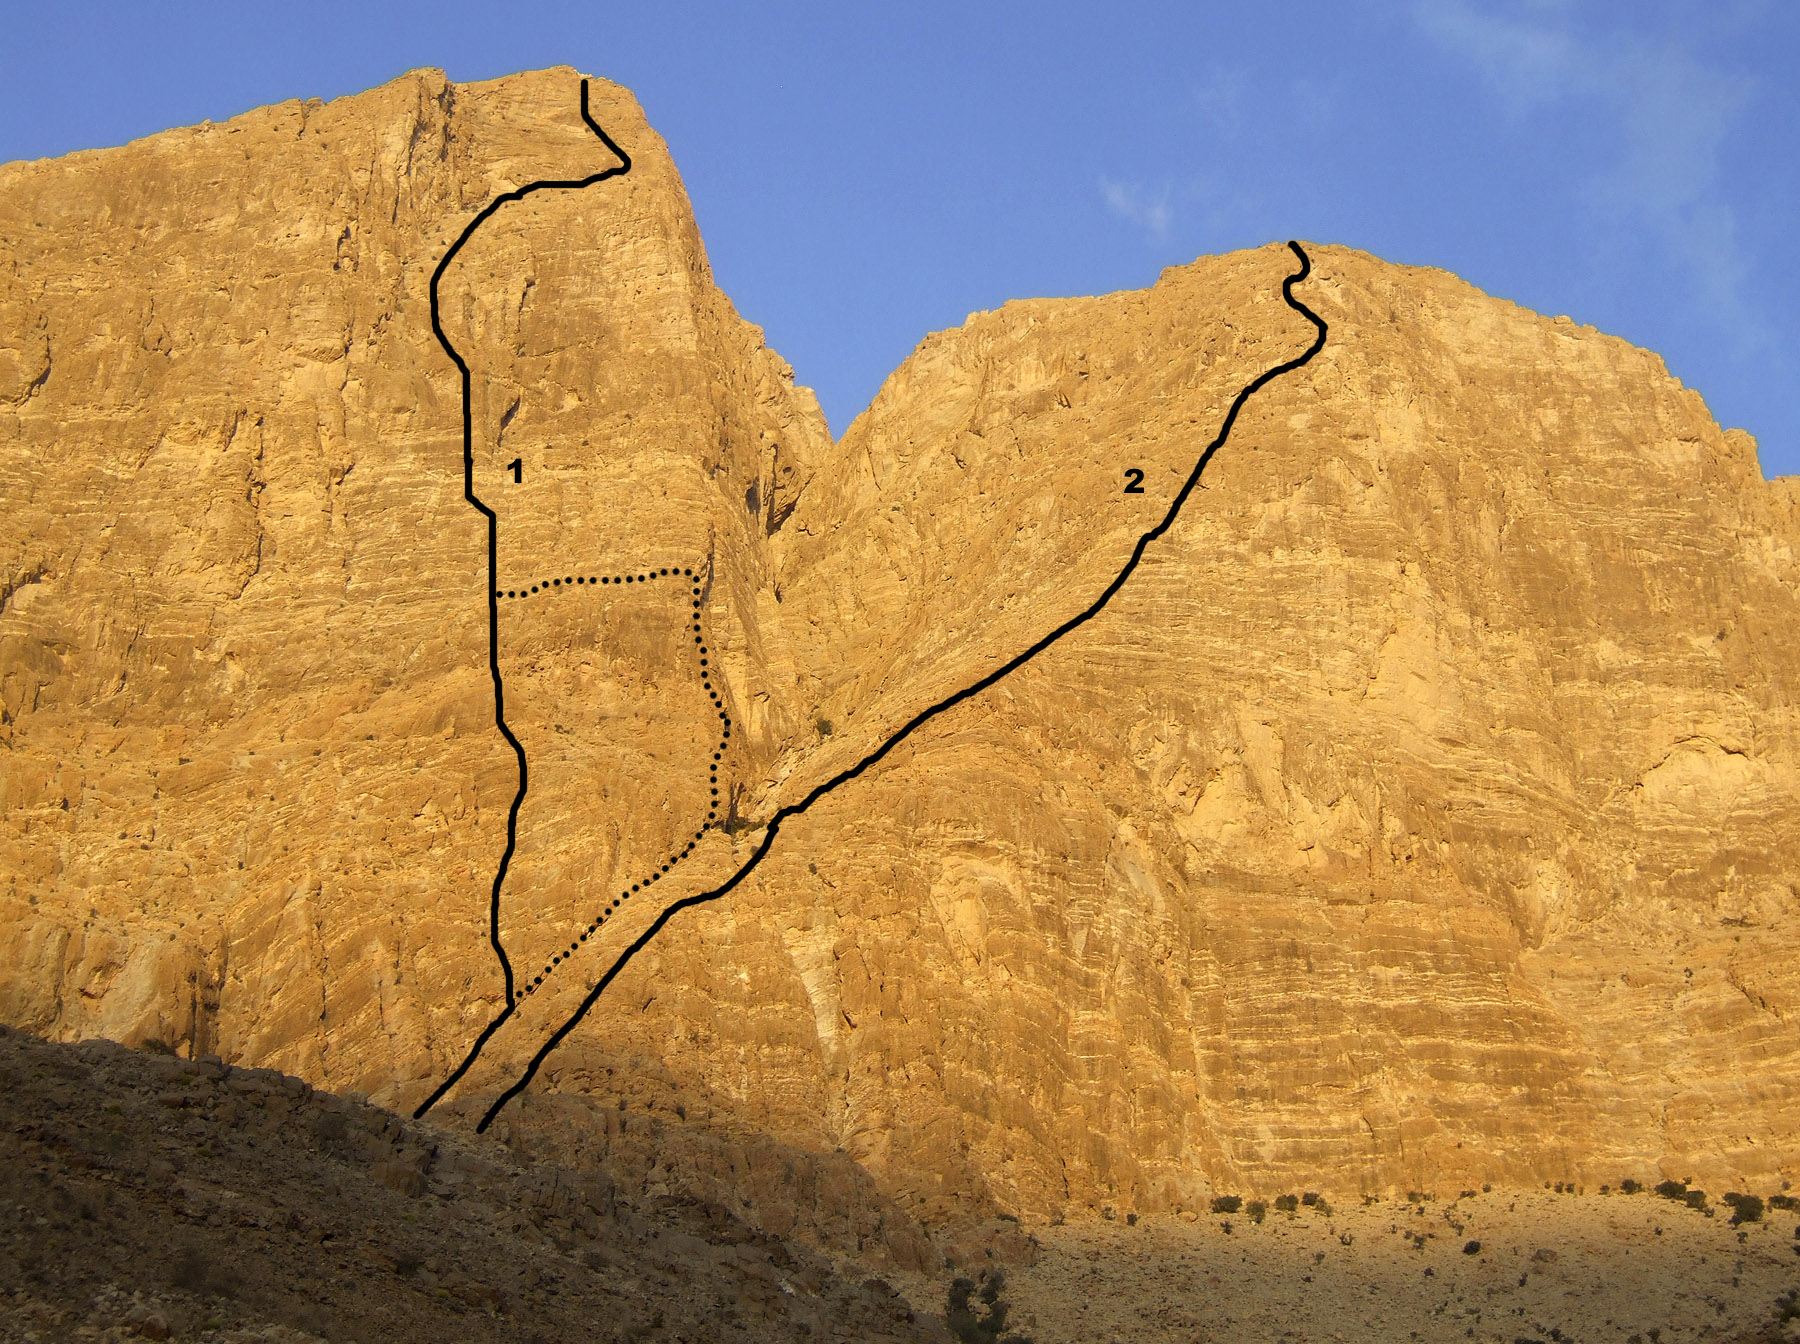 The southwest face of Jabal Kawr, showing (1) The Full Qaboos (Chaudry-Hornby, 1999, solid line; Eastwood-Ramsden, 1999, dotted line) on Kawr Pillar, and (2) Anhydrous Living on Mabos Pillar.